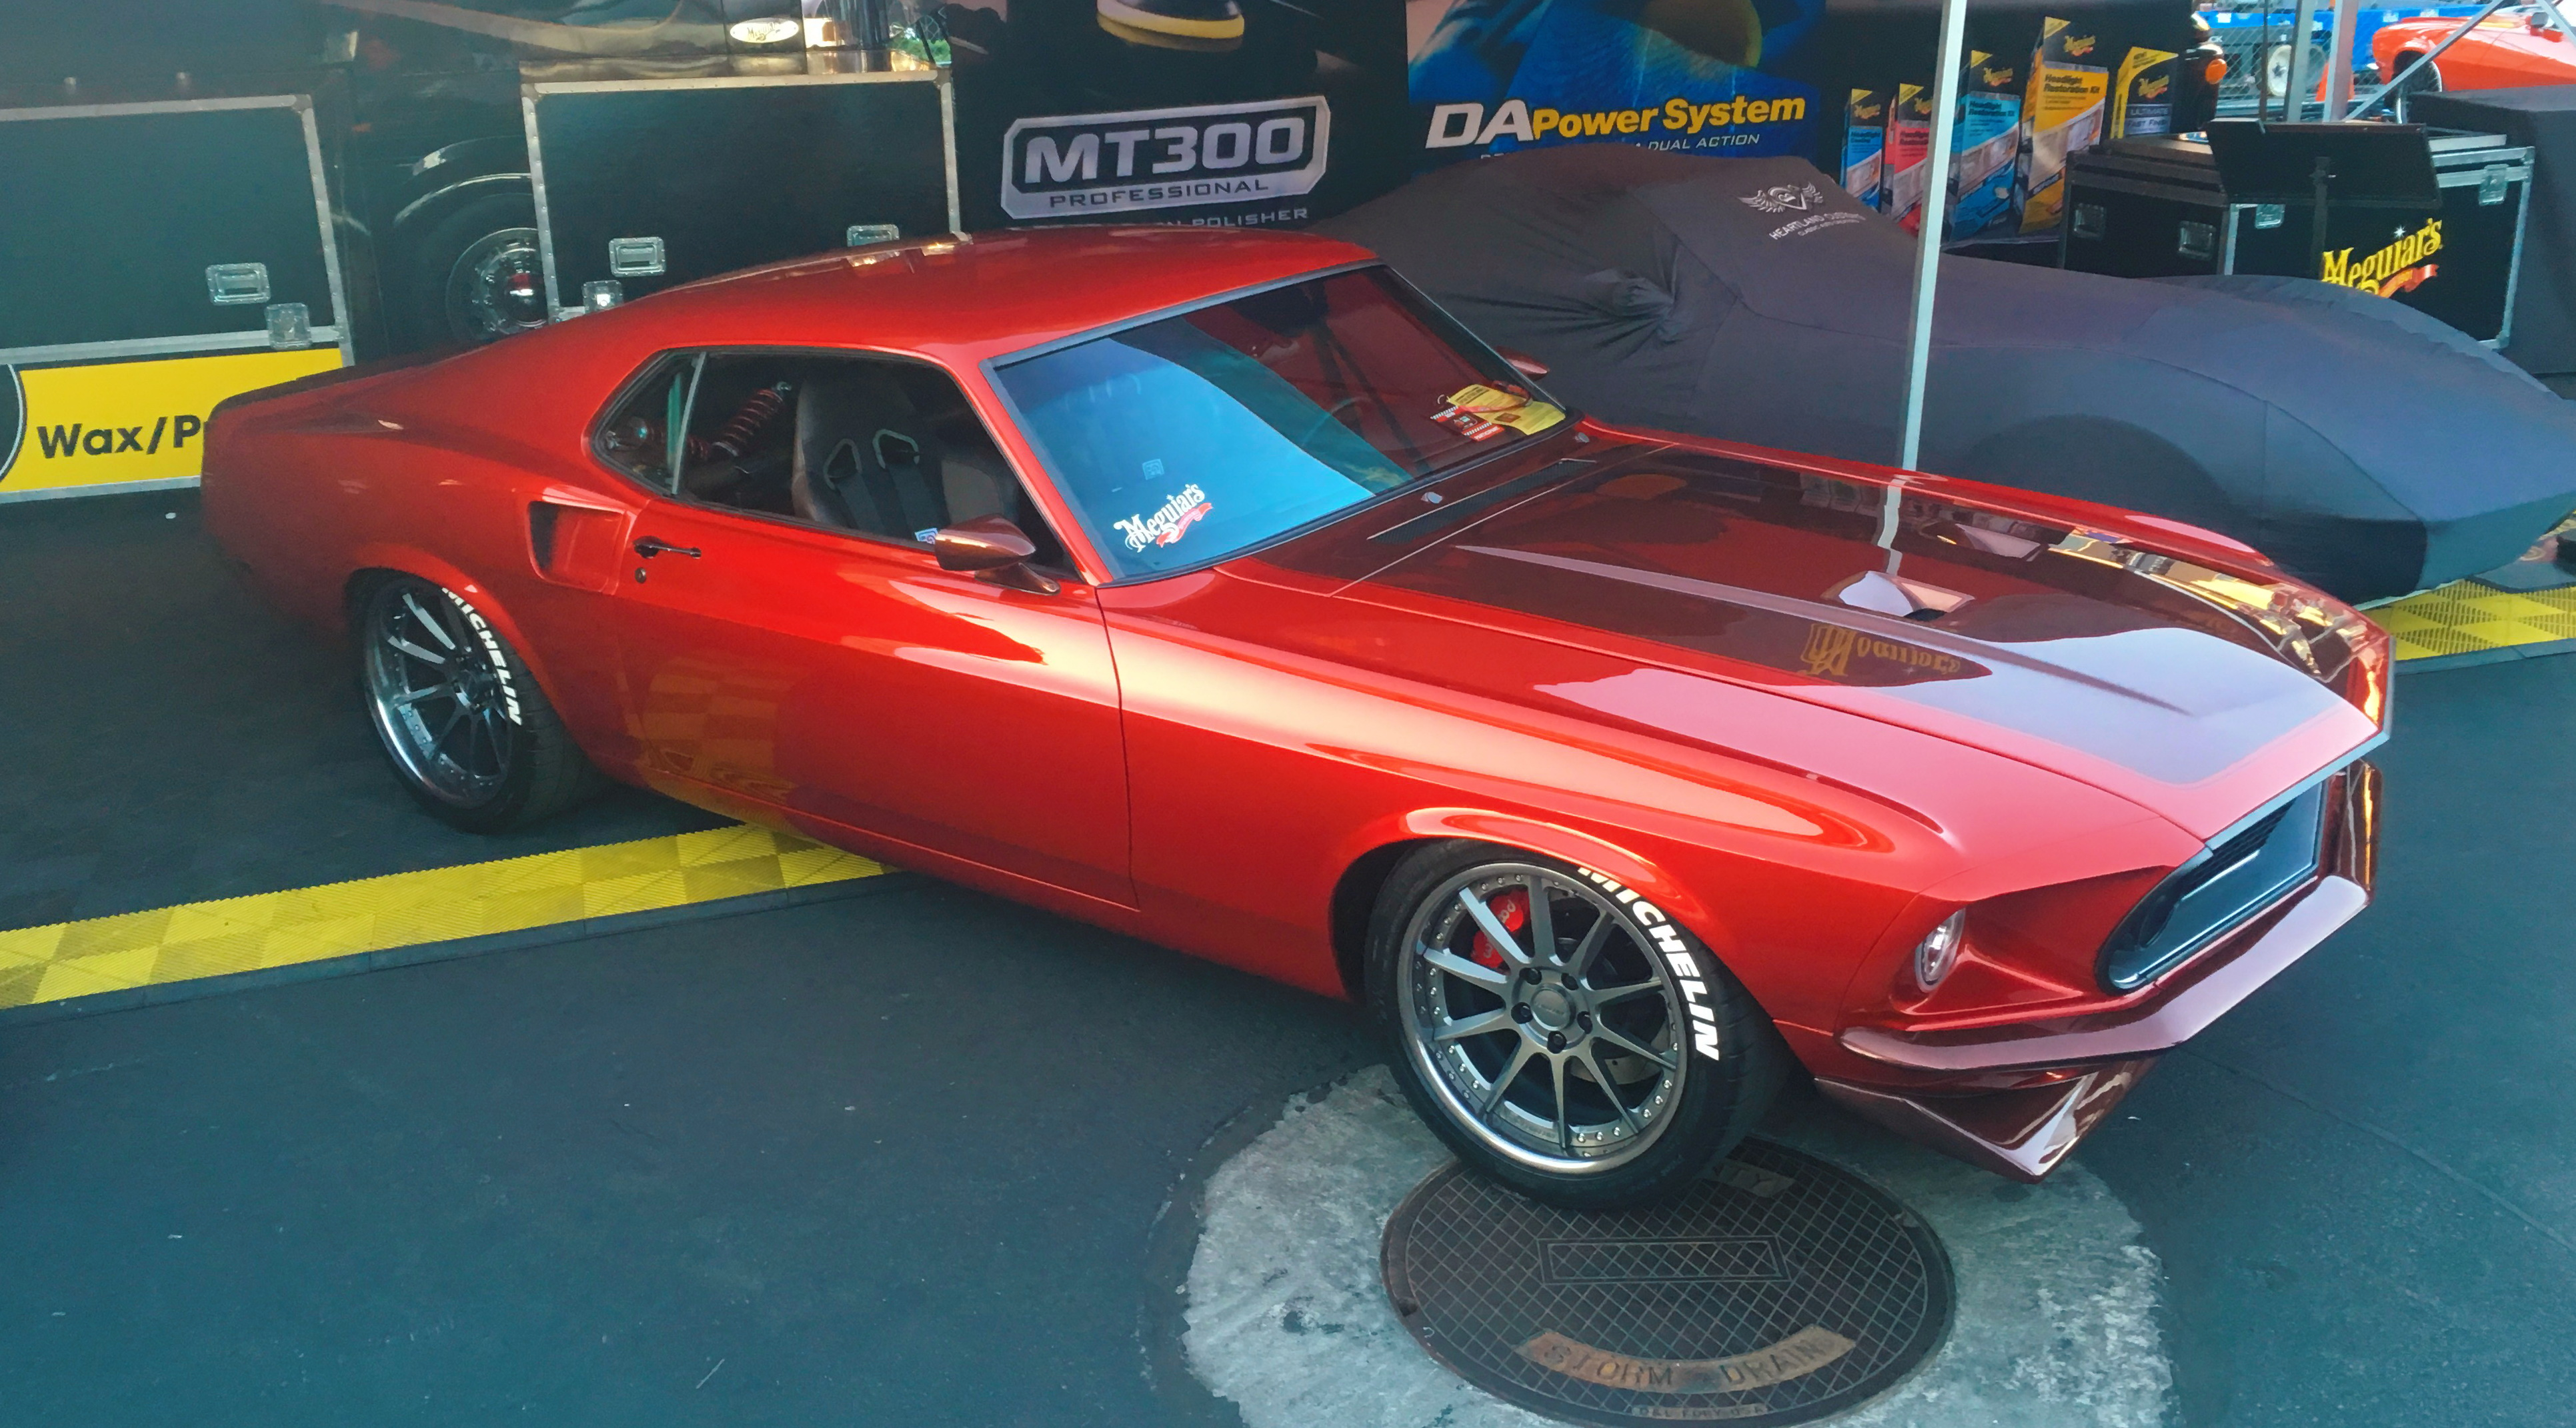 SEMA car at Meguiars booth